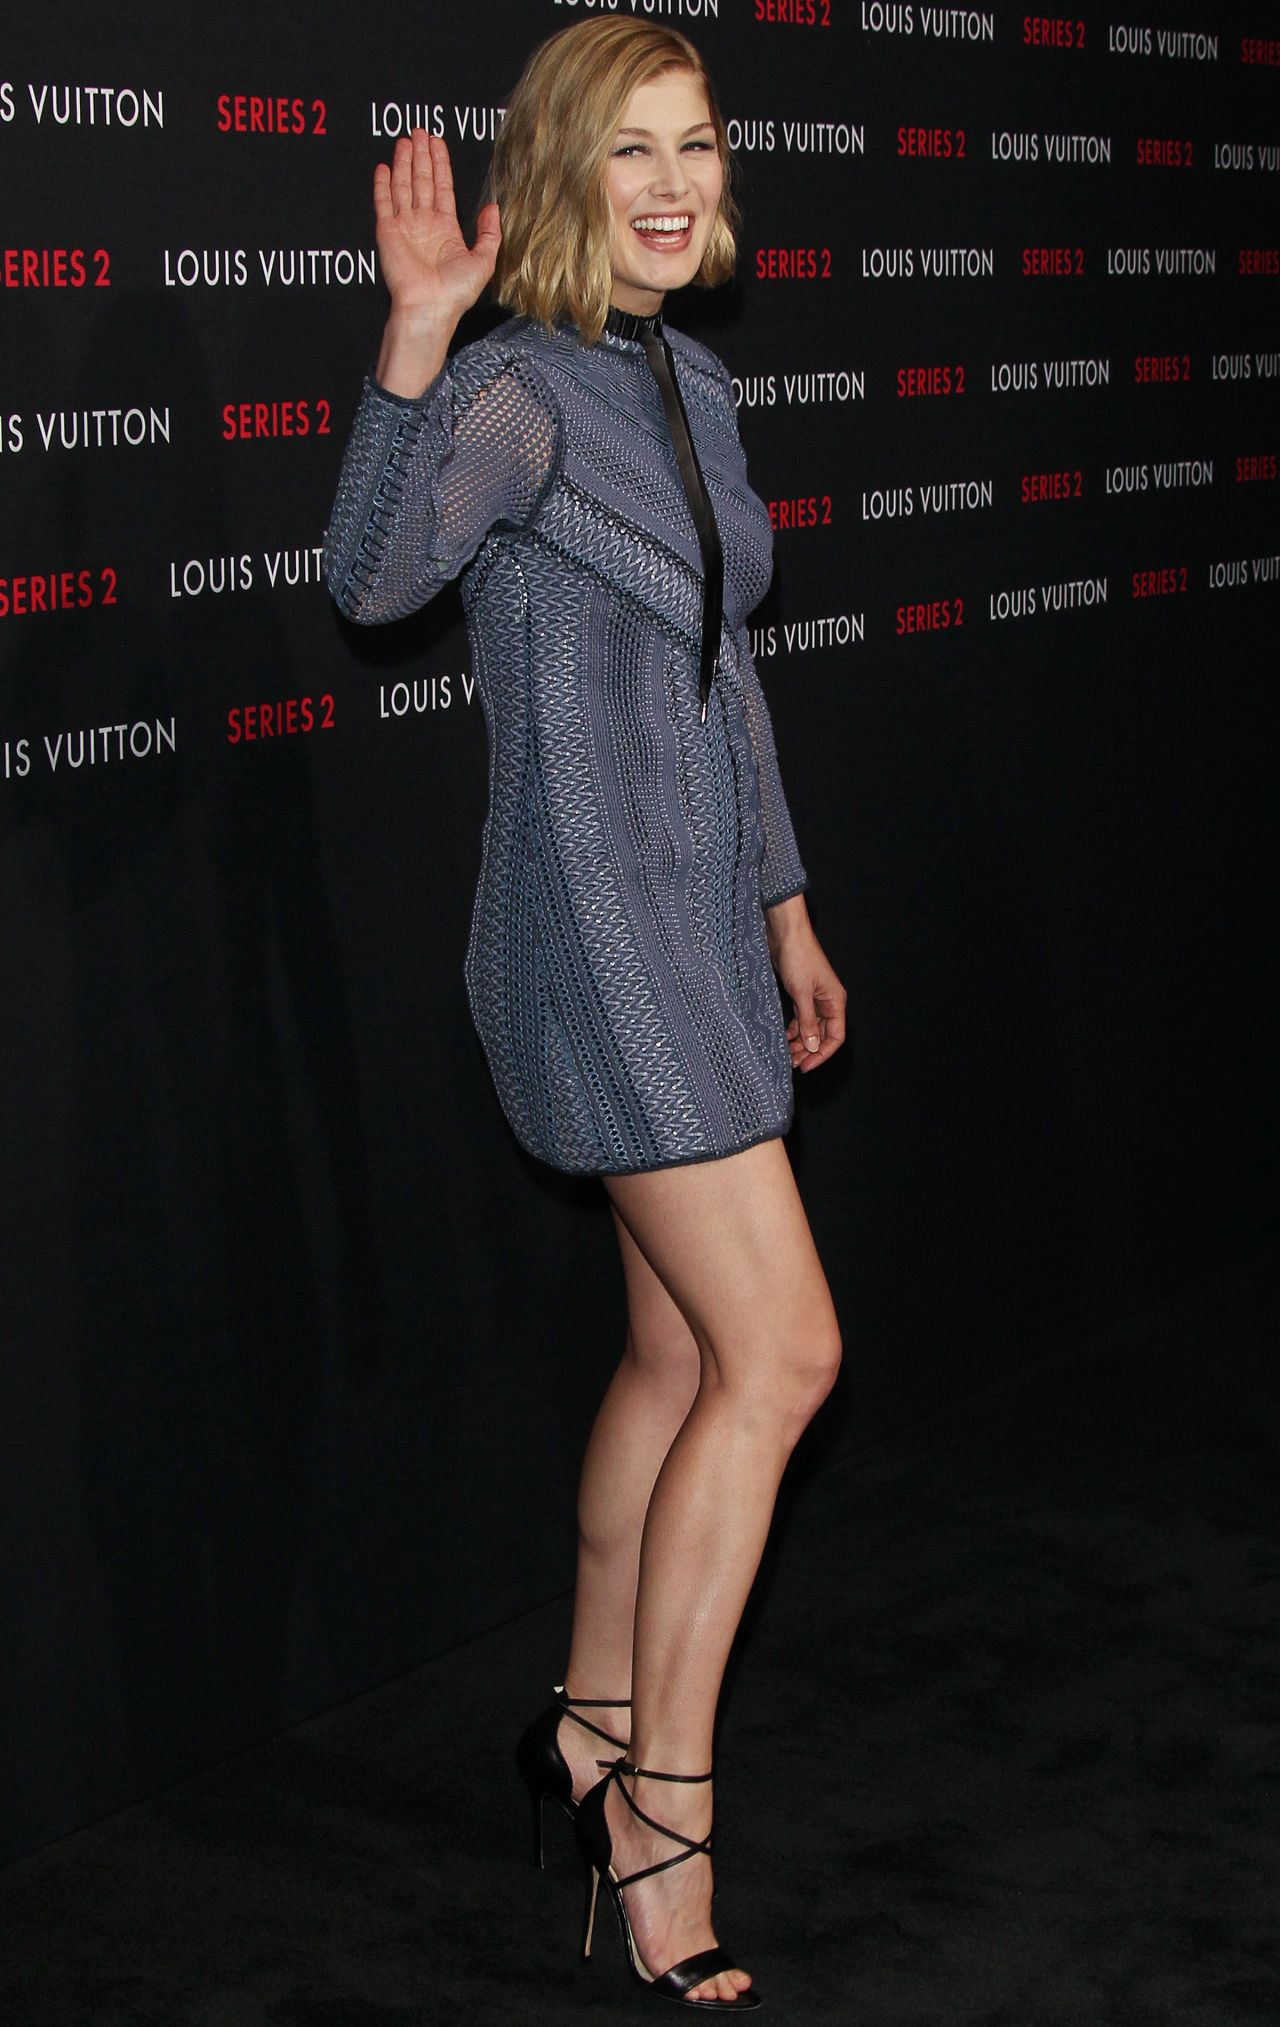 Palm Springs Ford >> Rosamund Pike - Louis Vuitton 'Series 2' The Exhibition in Hollywood